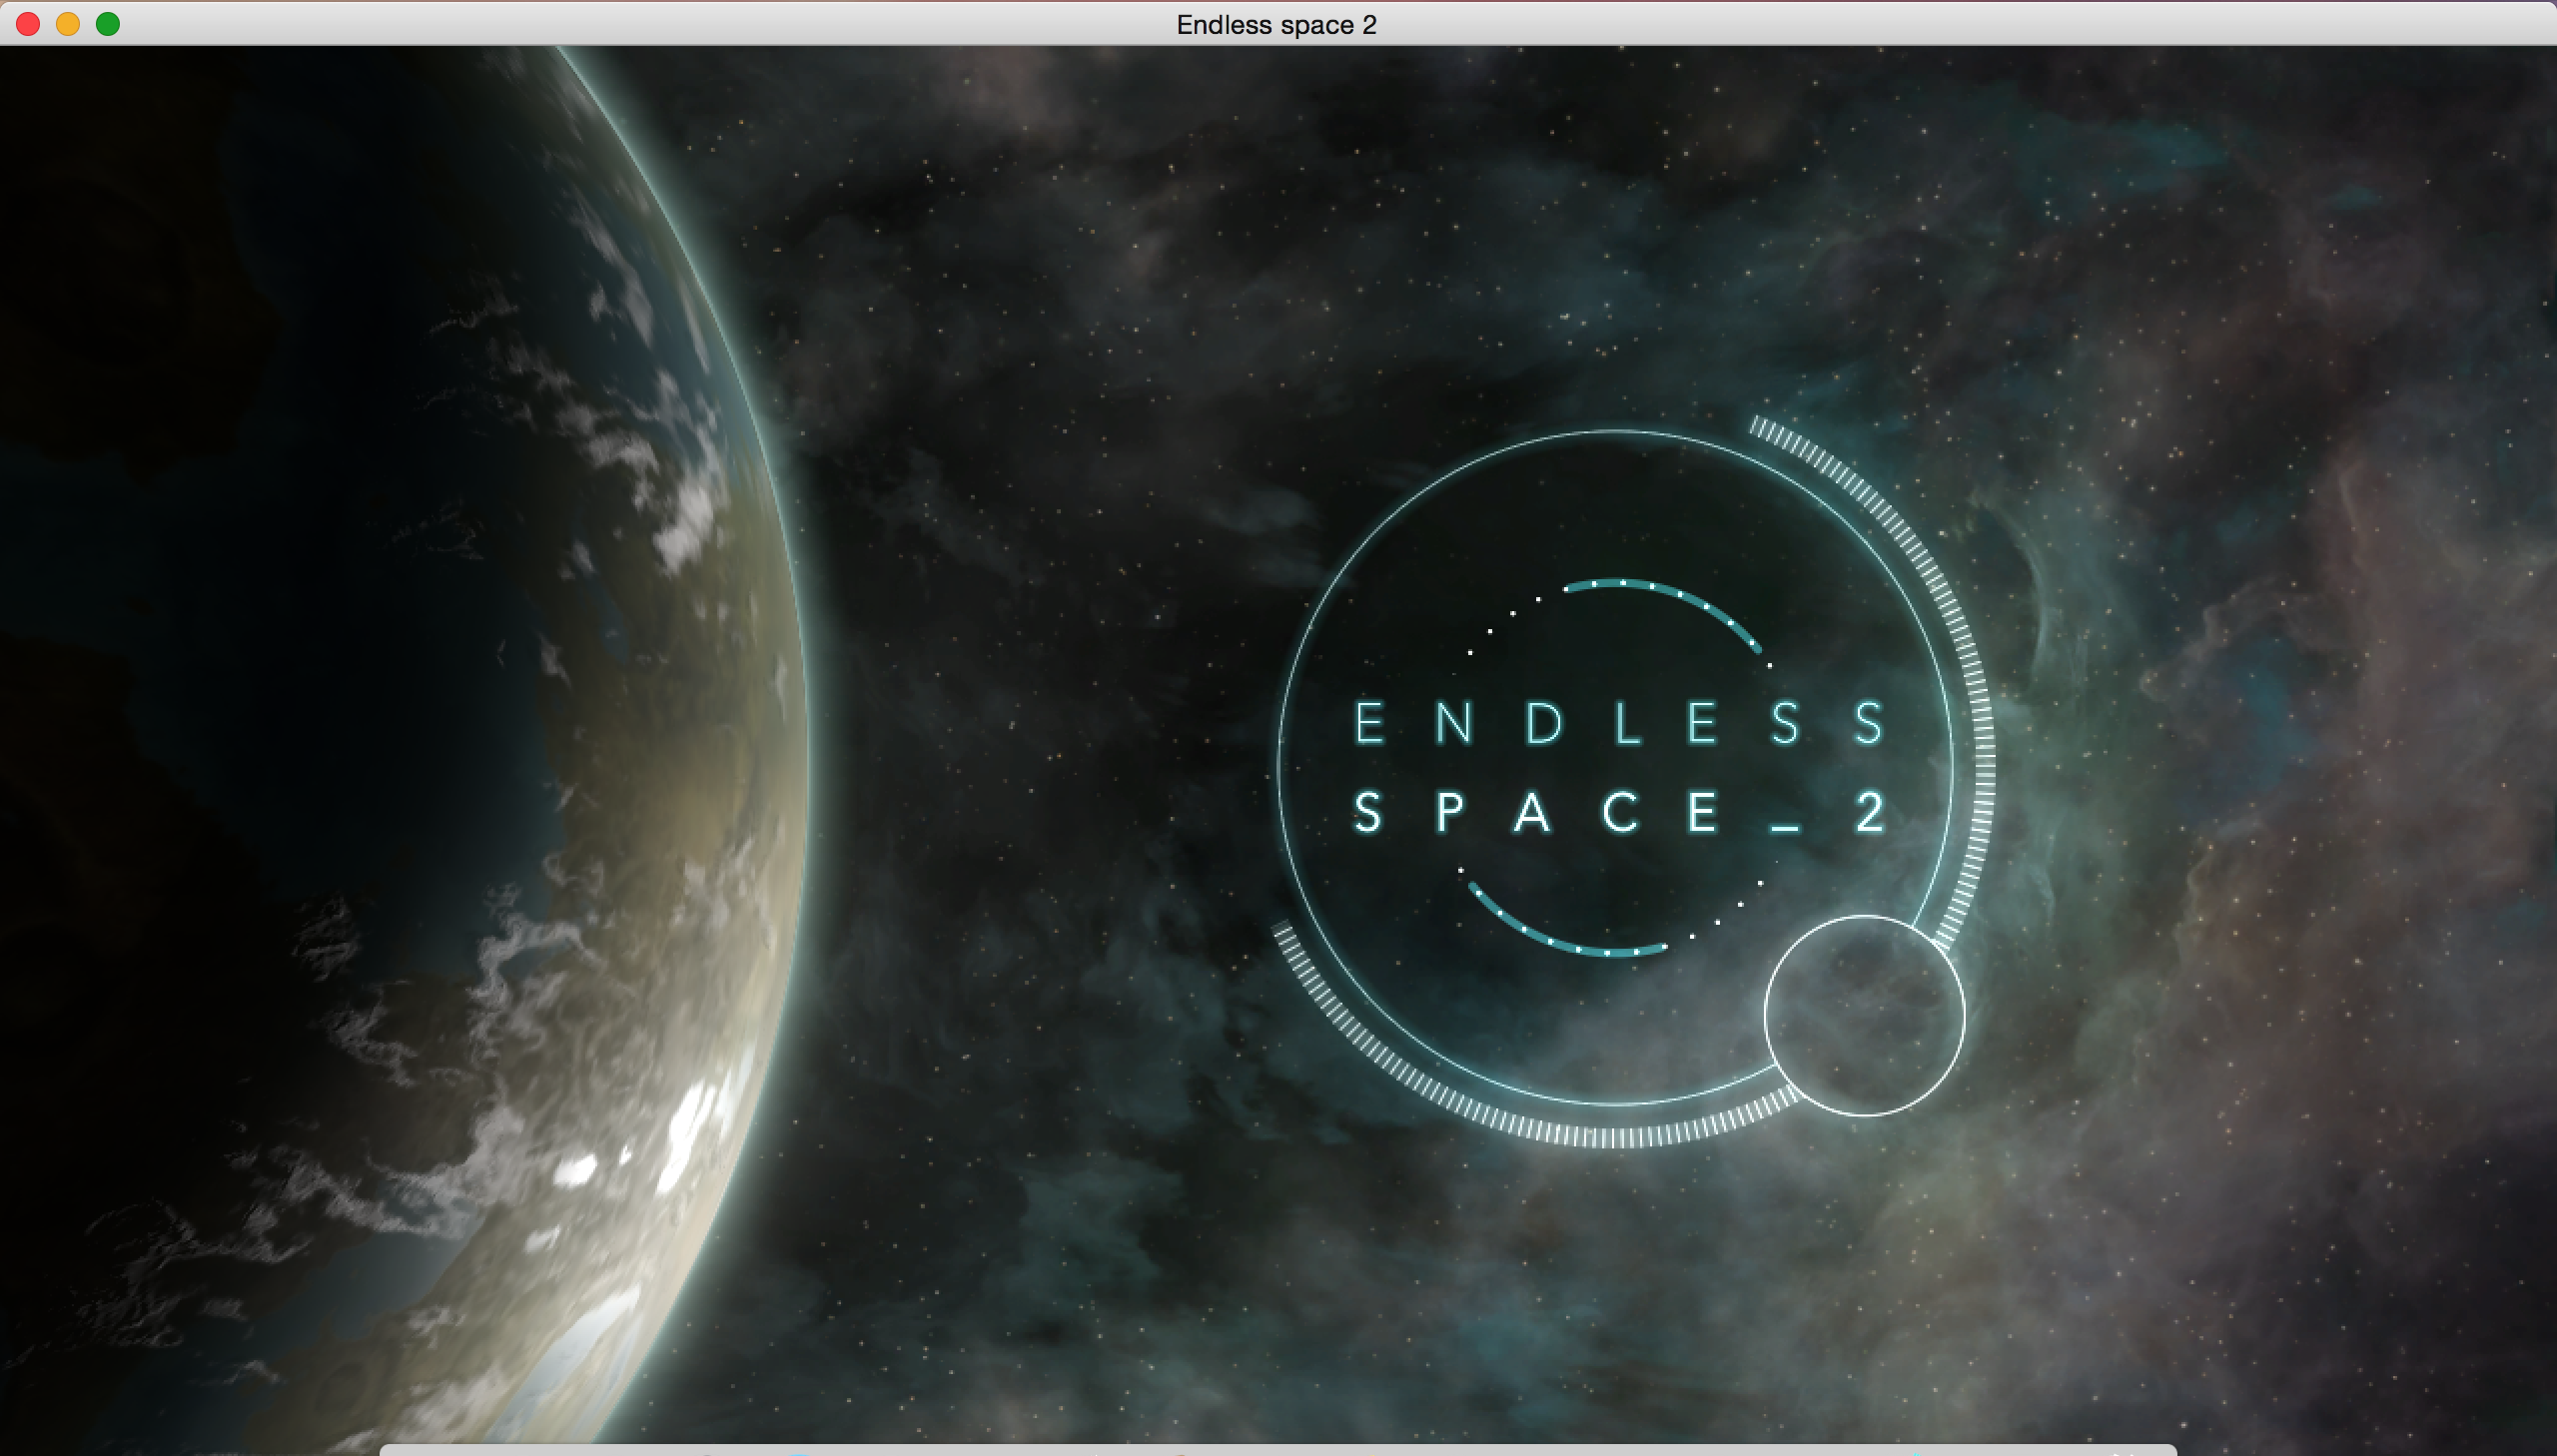 MAC] No text on main menu - Endless Space 2